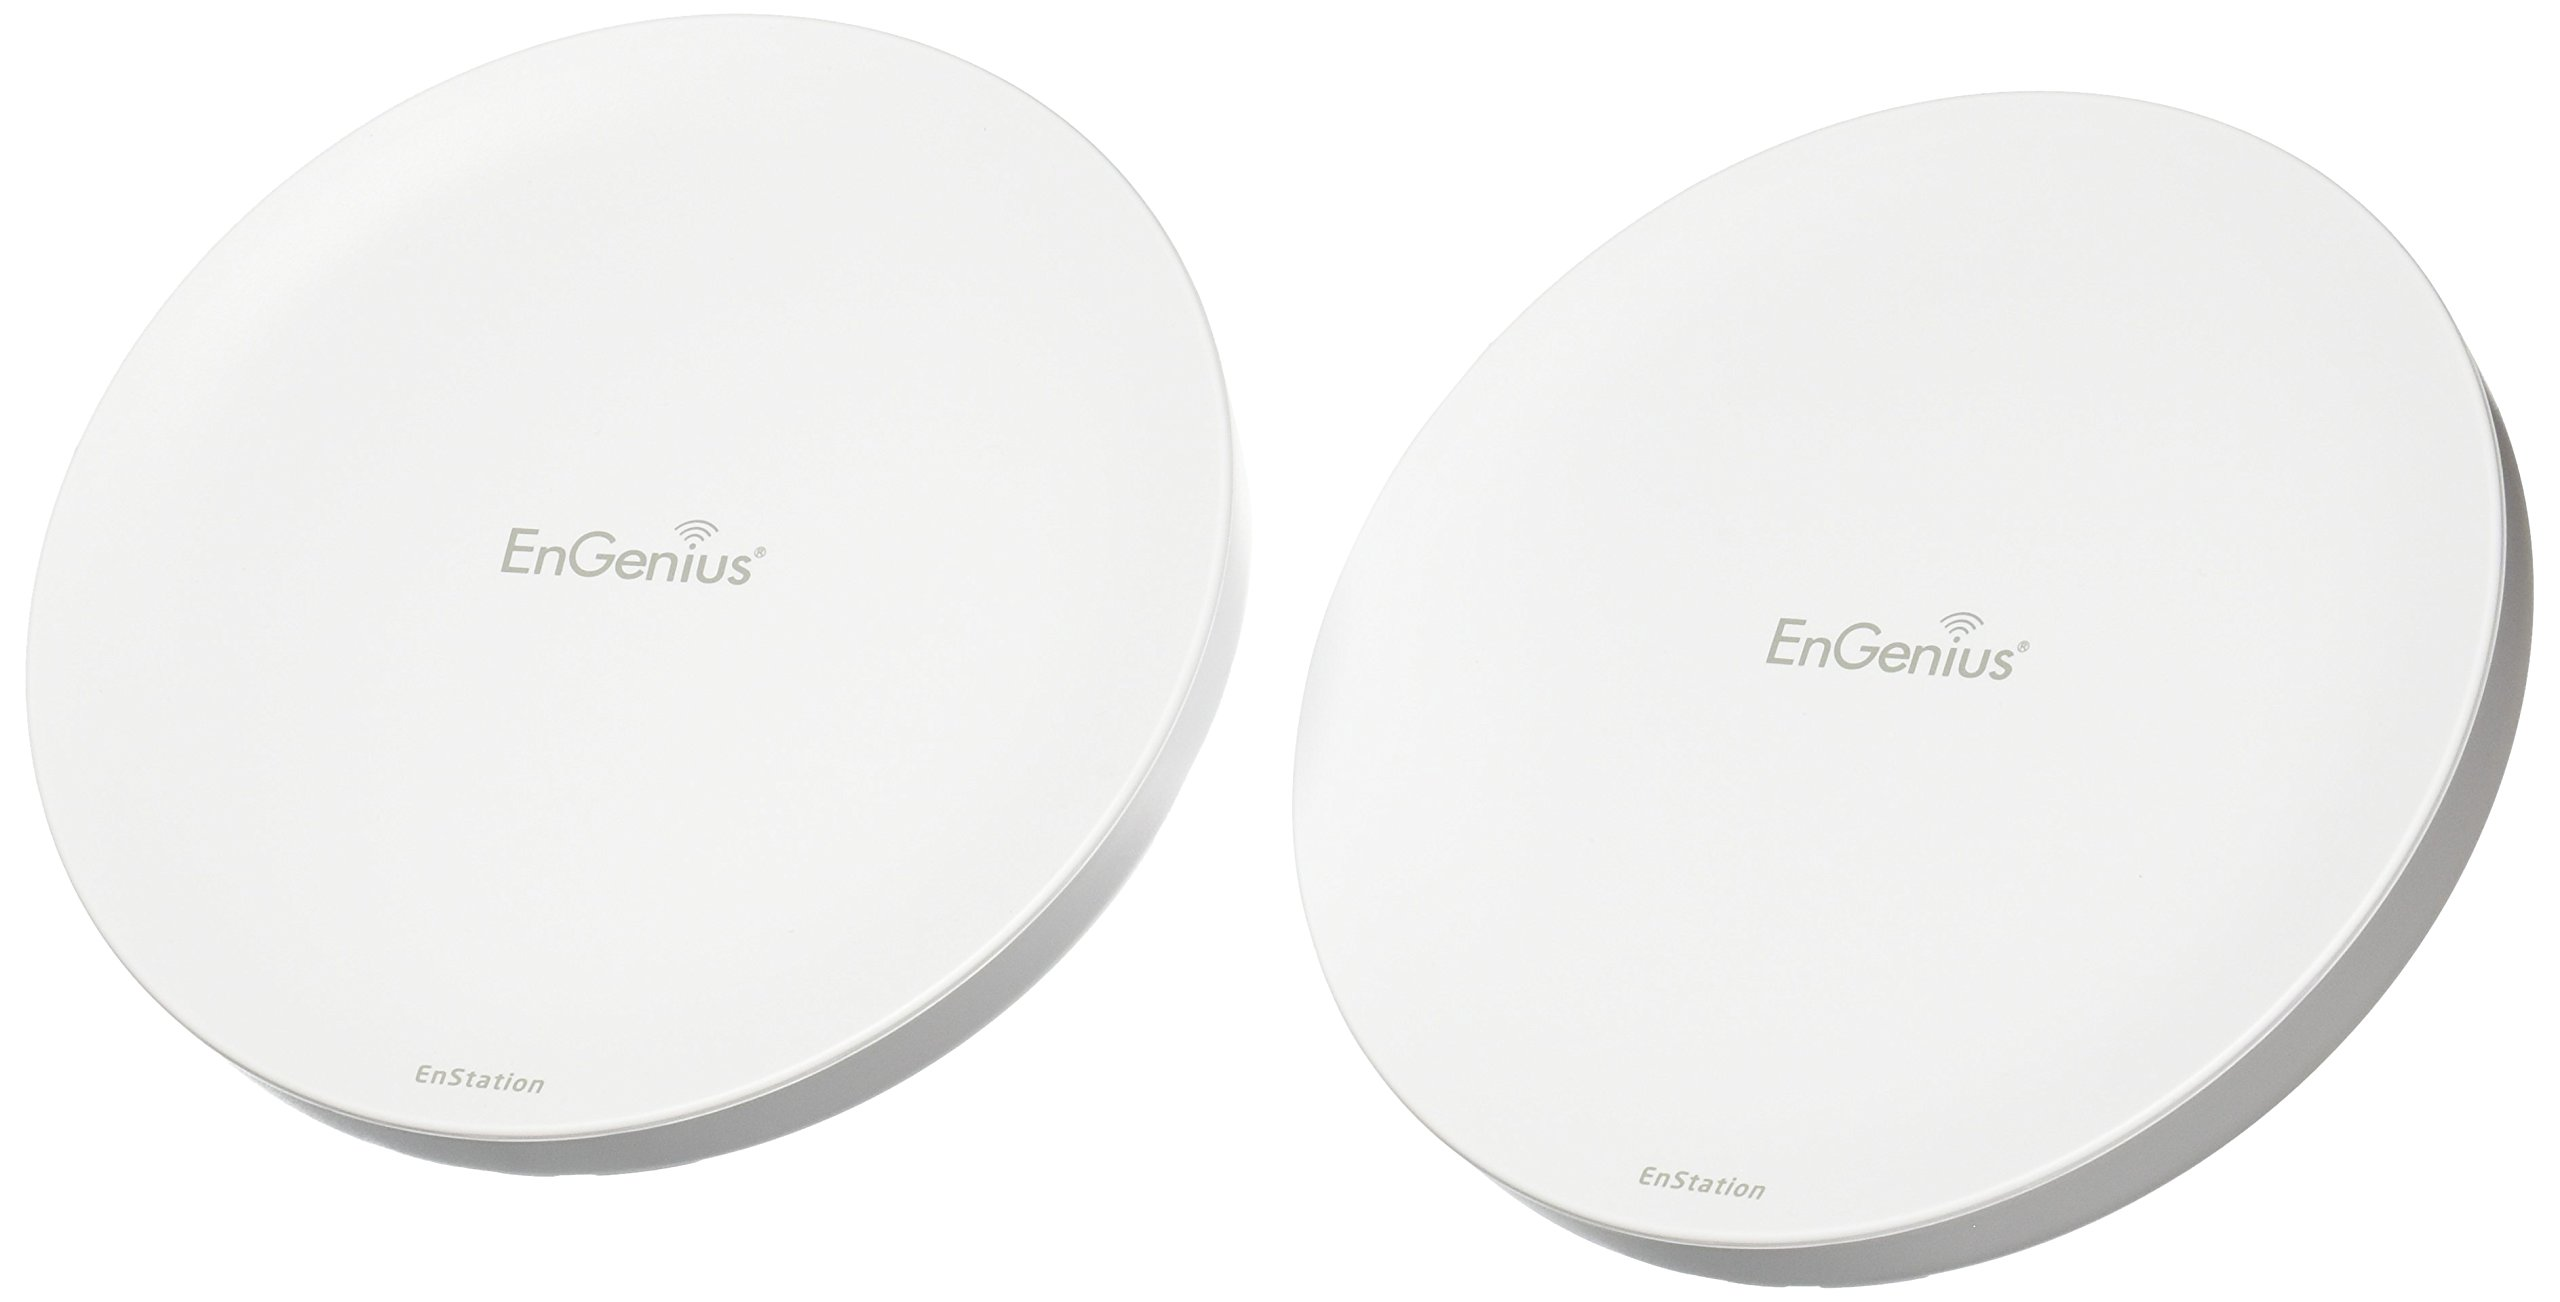 EnGenius 80211n 2x2, 5GHz, high-powered, long range, Wireless Outdoor Client Bridge/CPE/AP, directional antenna, long-range, point-to-point, IP55, 26 dBm,19 dBi, two Ethernet Port, PoE Injector included [2-Pack] (N-EnStation5 Kit)